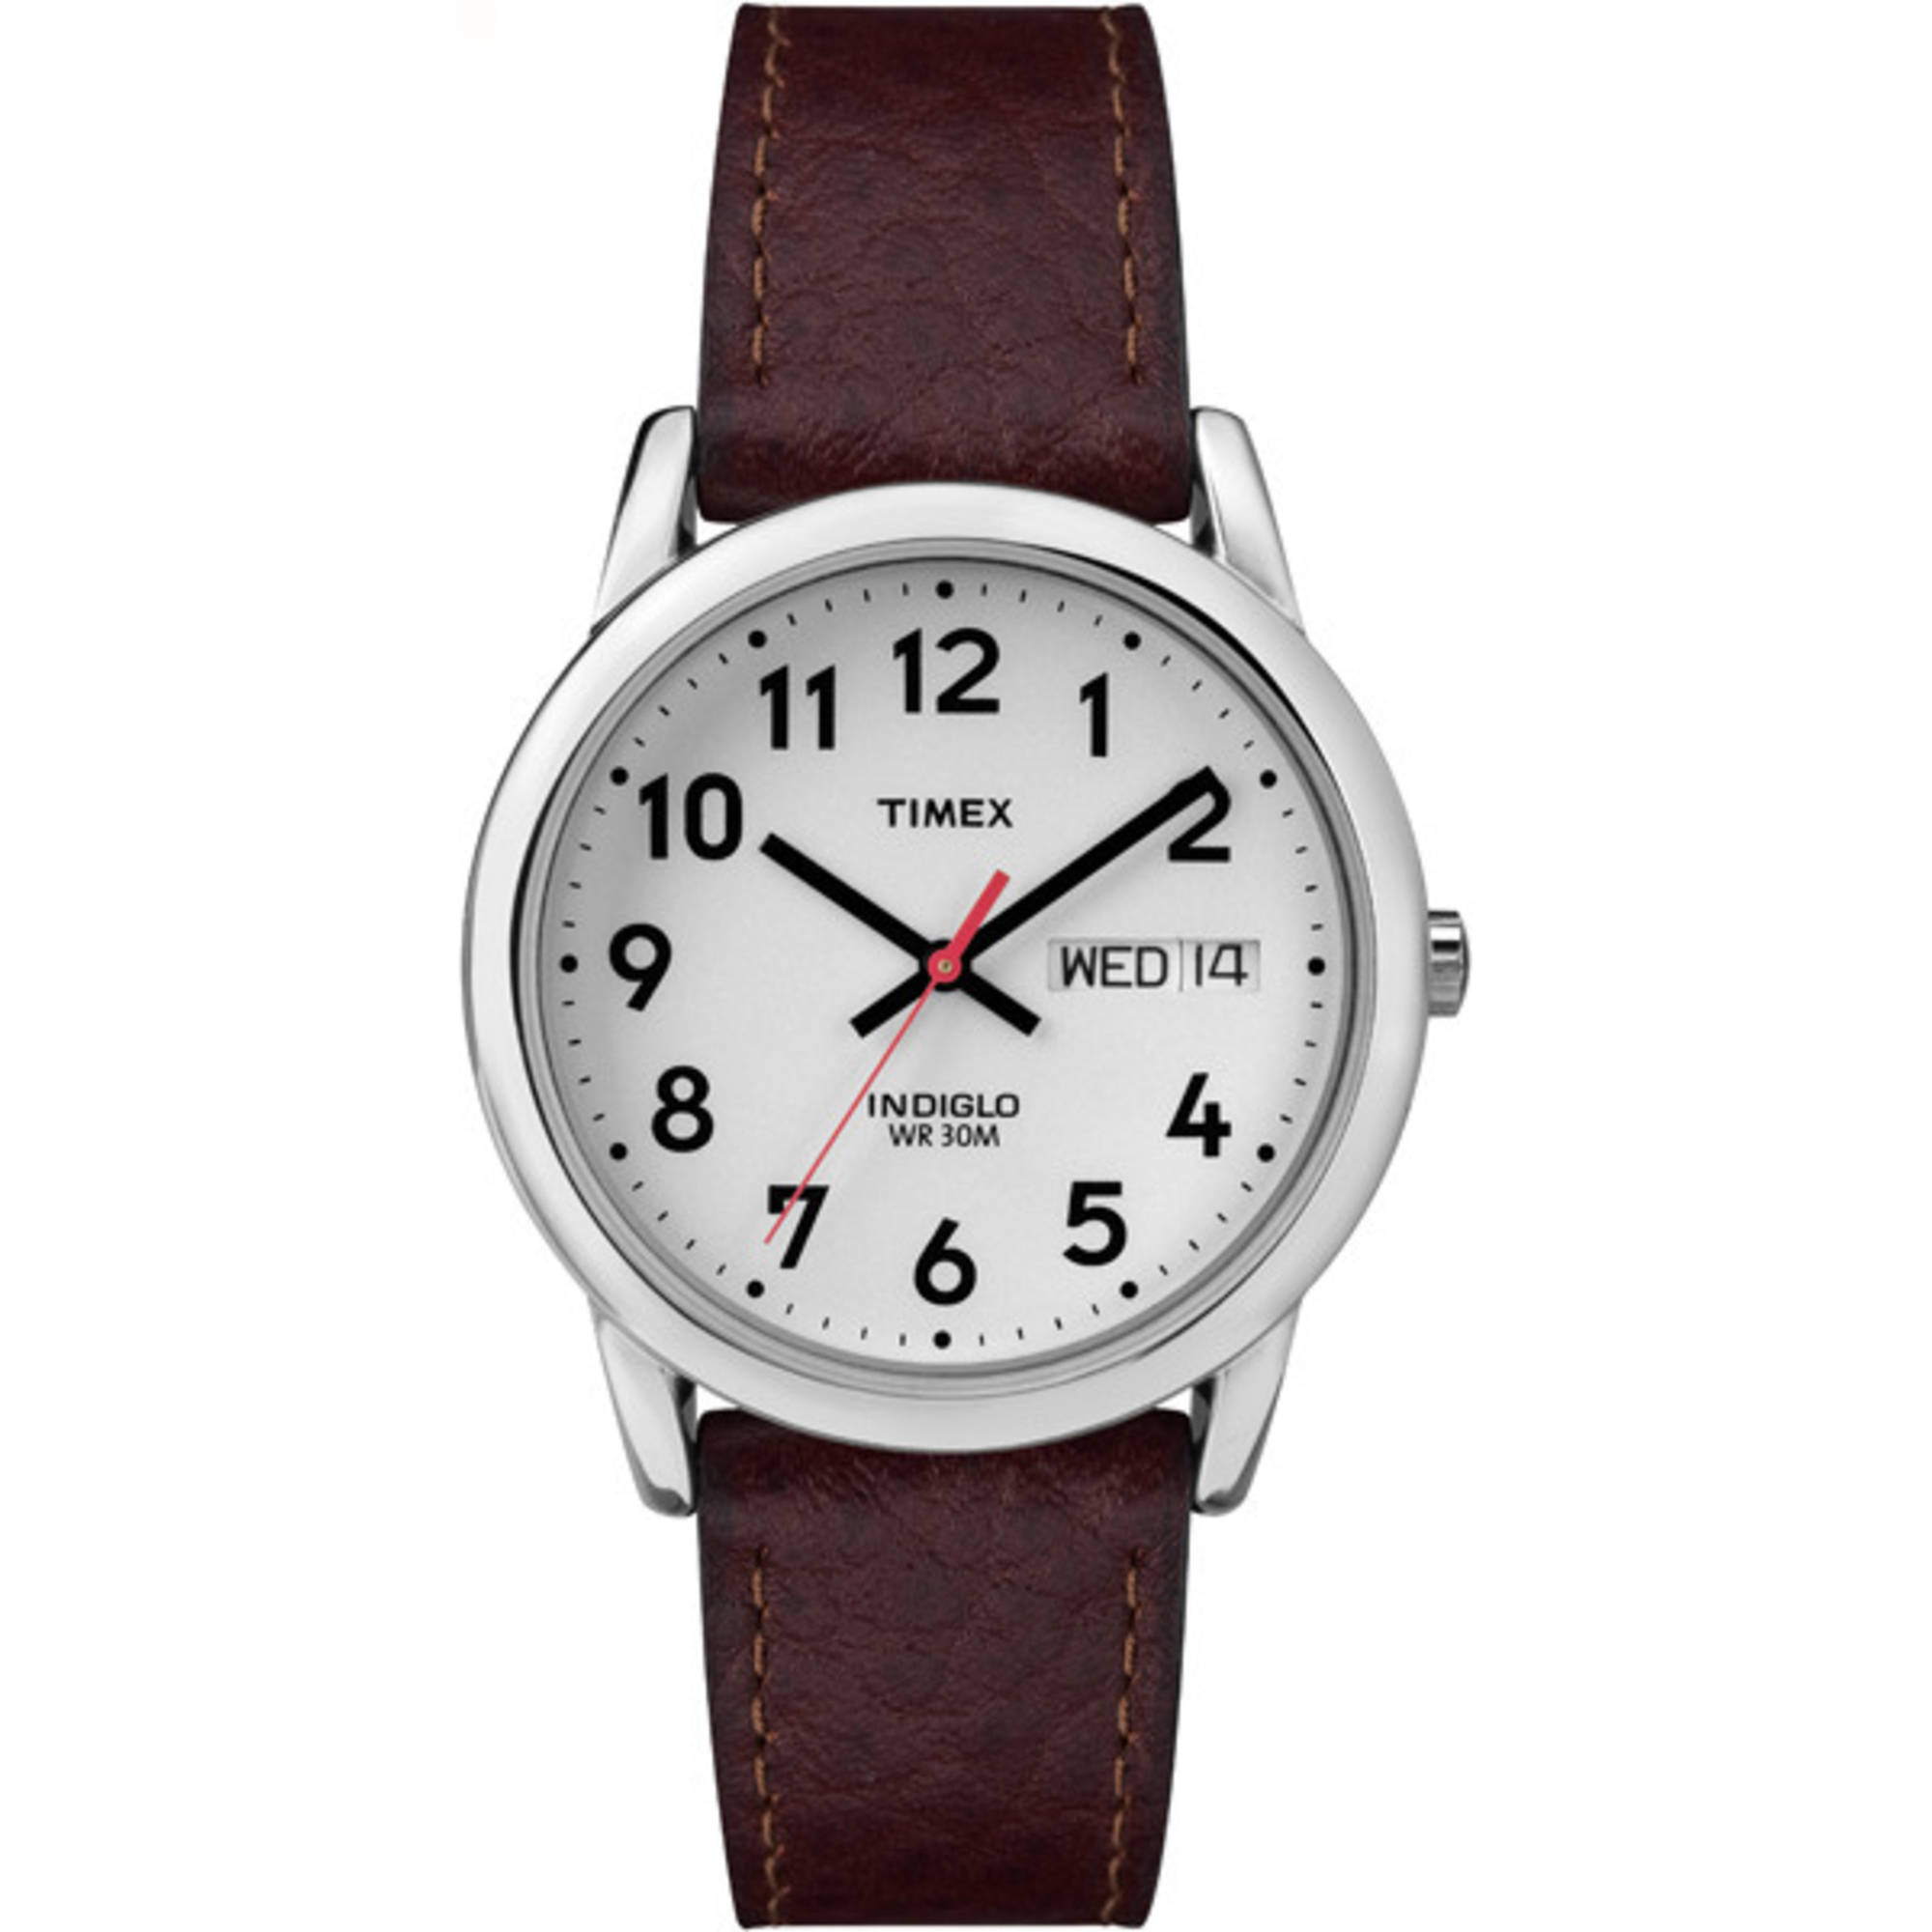 Timex Men's Easy Reader Watch, Brown Textured Leather Strap